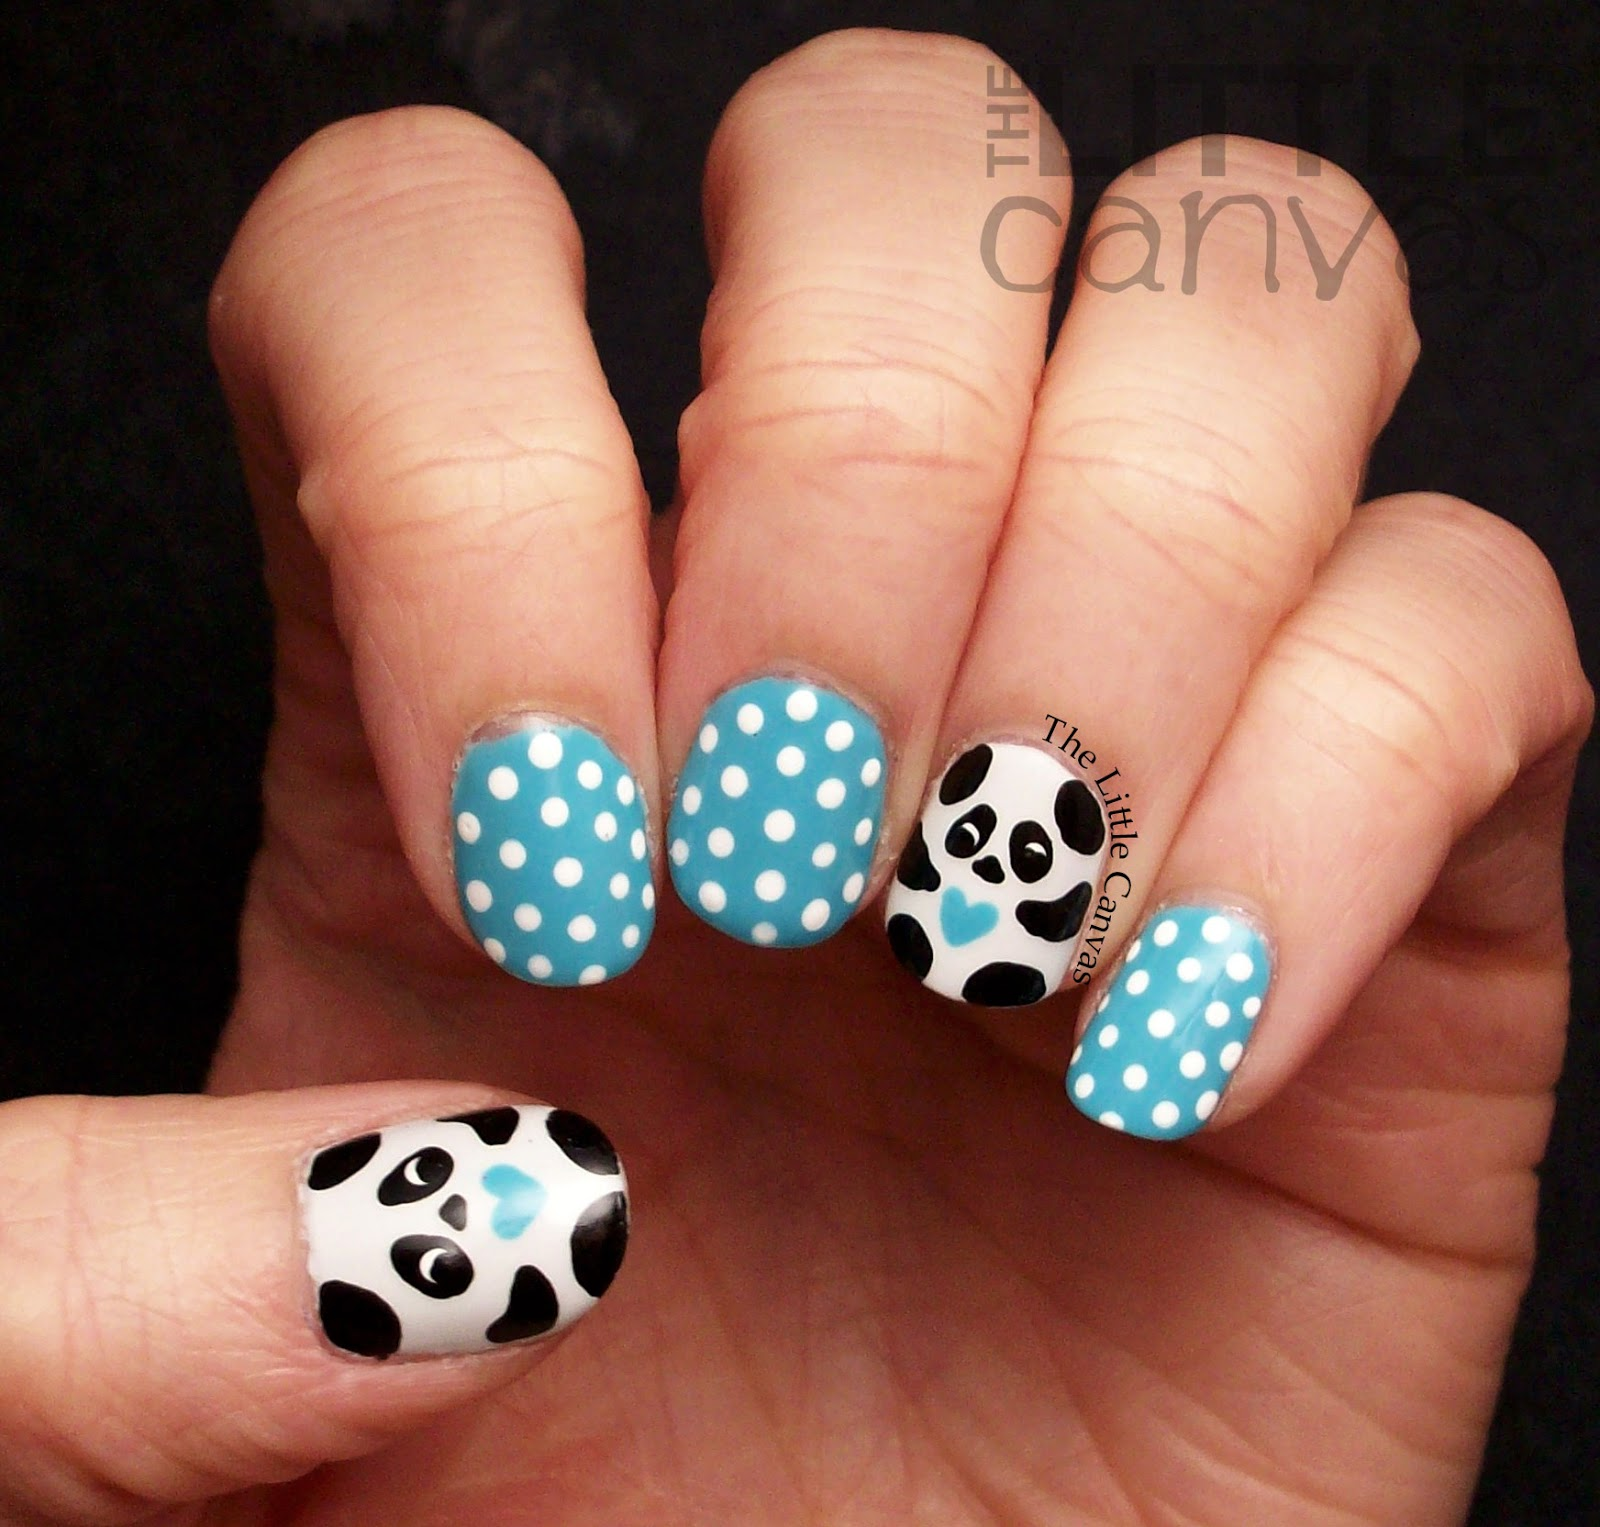 Panda nail art the little canvas lets take a look prinsesfo Image collections